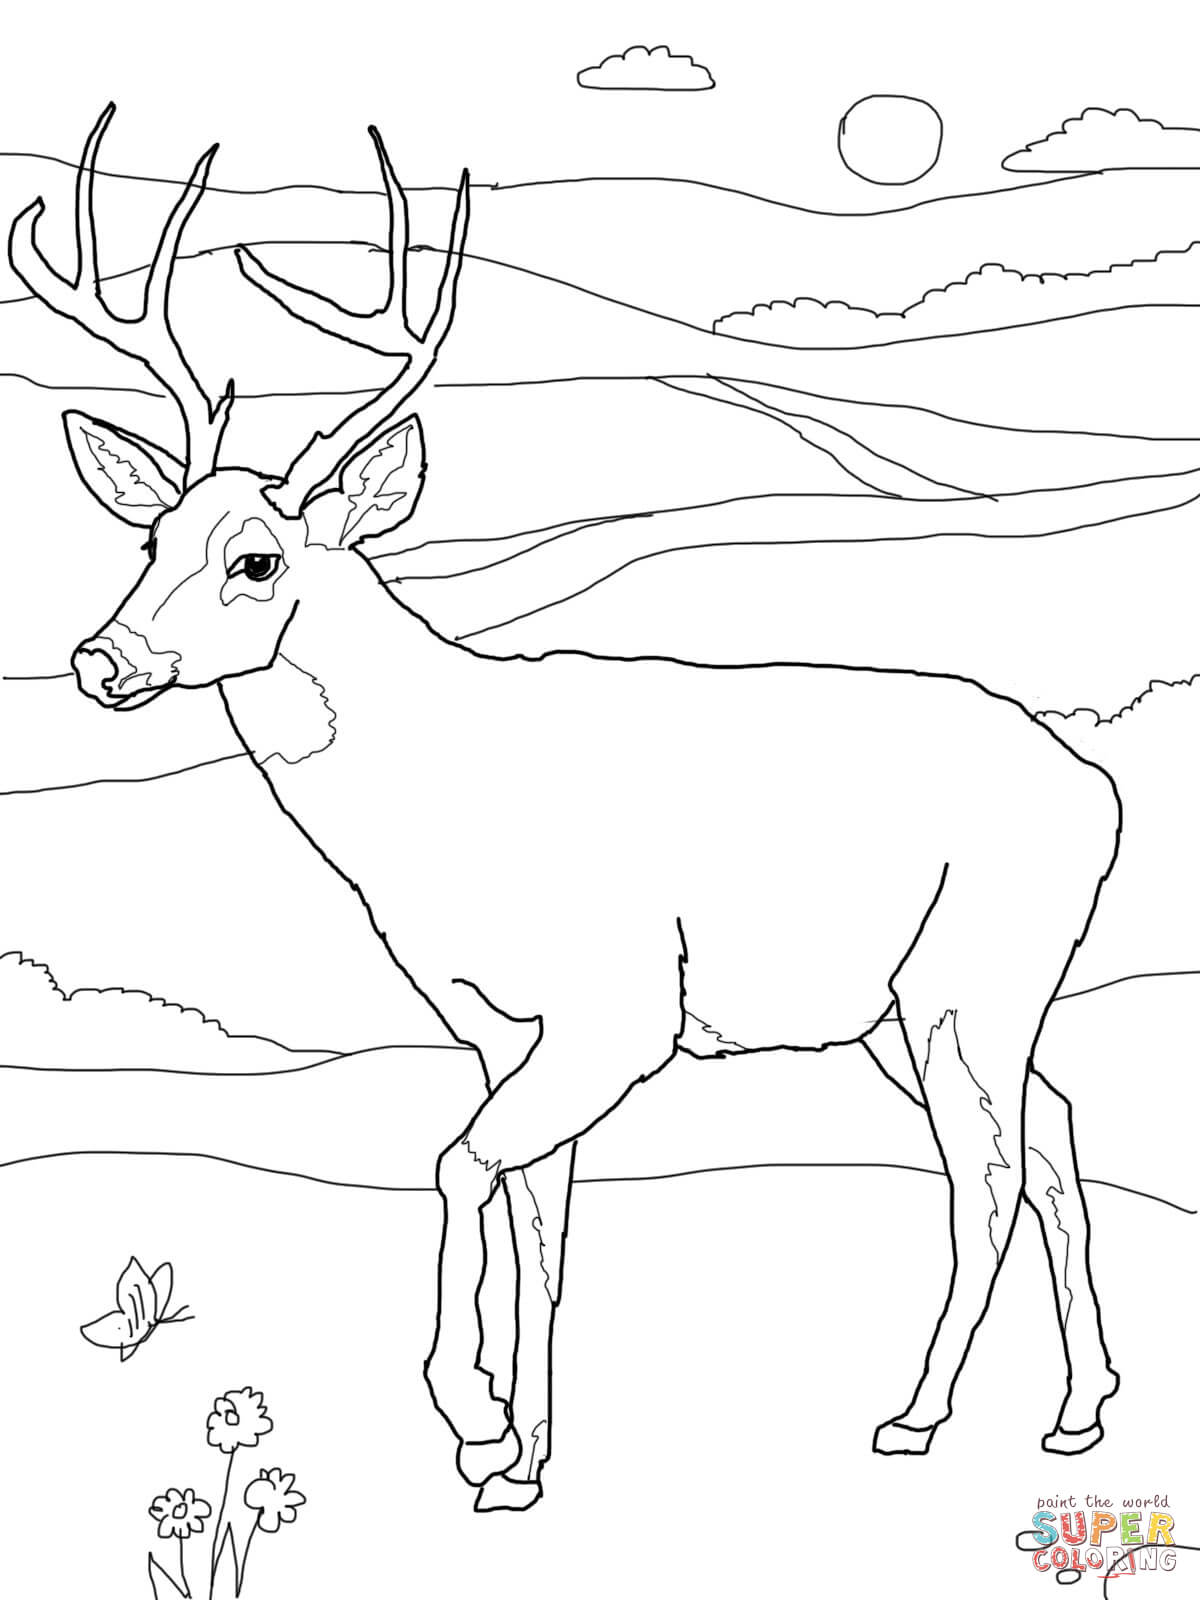 White Tail Deer Coloring Page Free Printable Pages